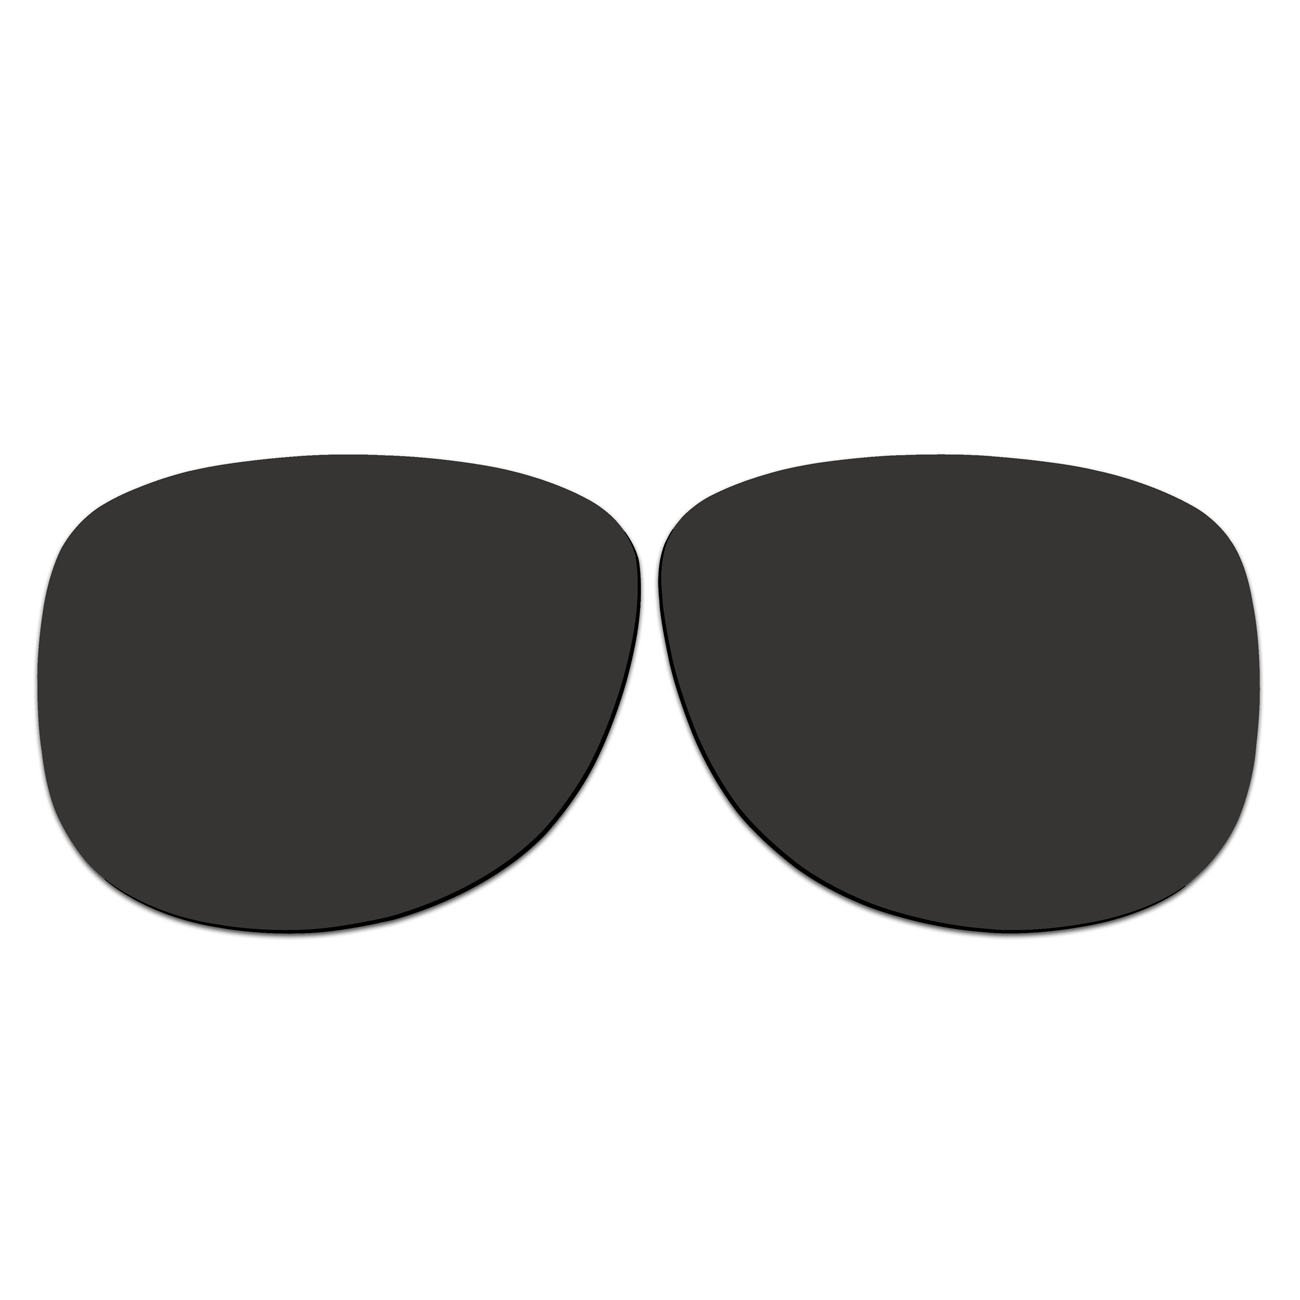 a7ac614f13 Amazon.com   ACOMPATIBLE Replacement Lenses for Oakley Sliver Round  Sunglasses OO9342 (Black - Polarized)   Sports   Outdoors